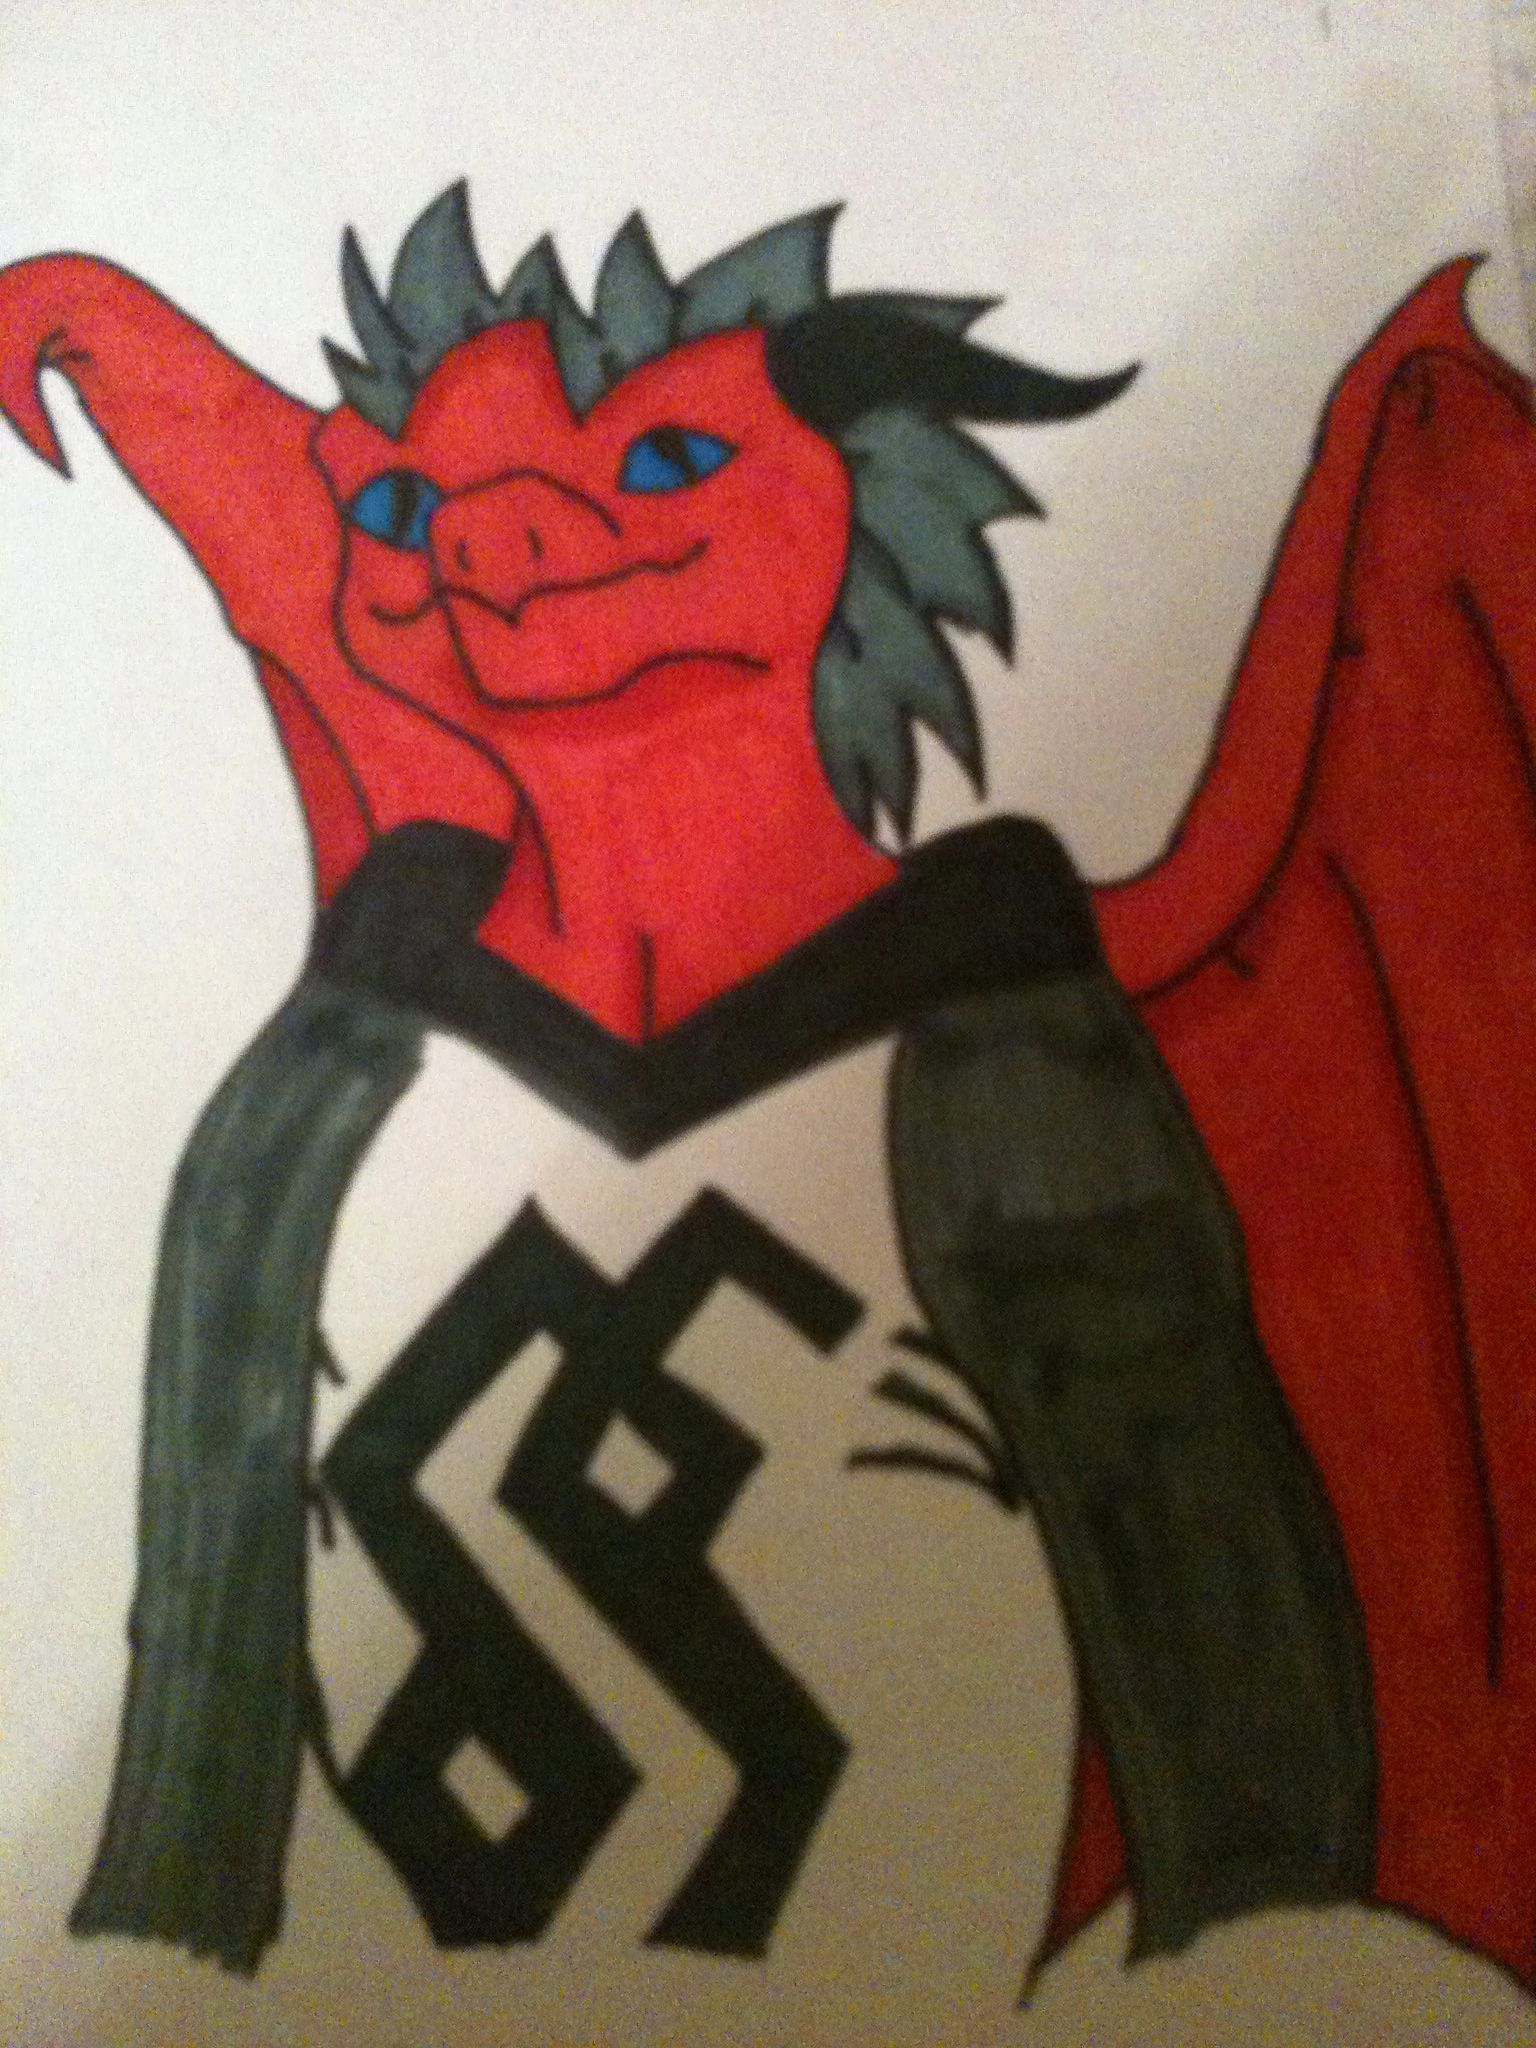 ((RP?)) This is Riech (pronounced Rike). He is a 16 year old dragon mutant. He is a typical rebel type personality.